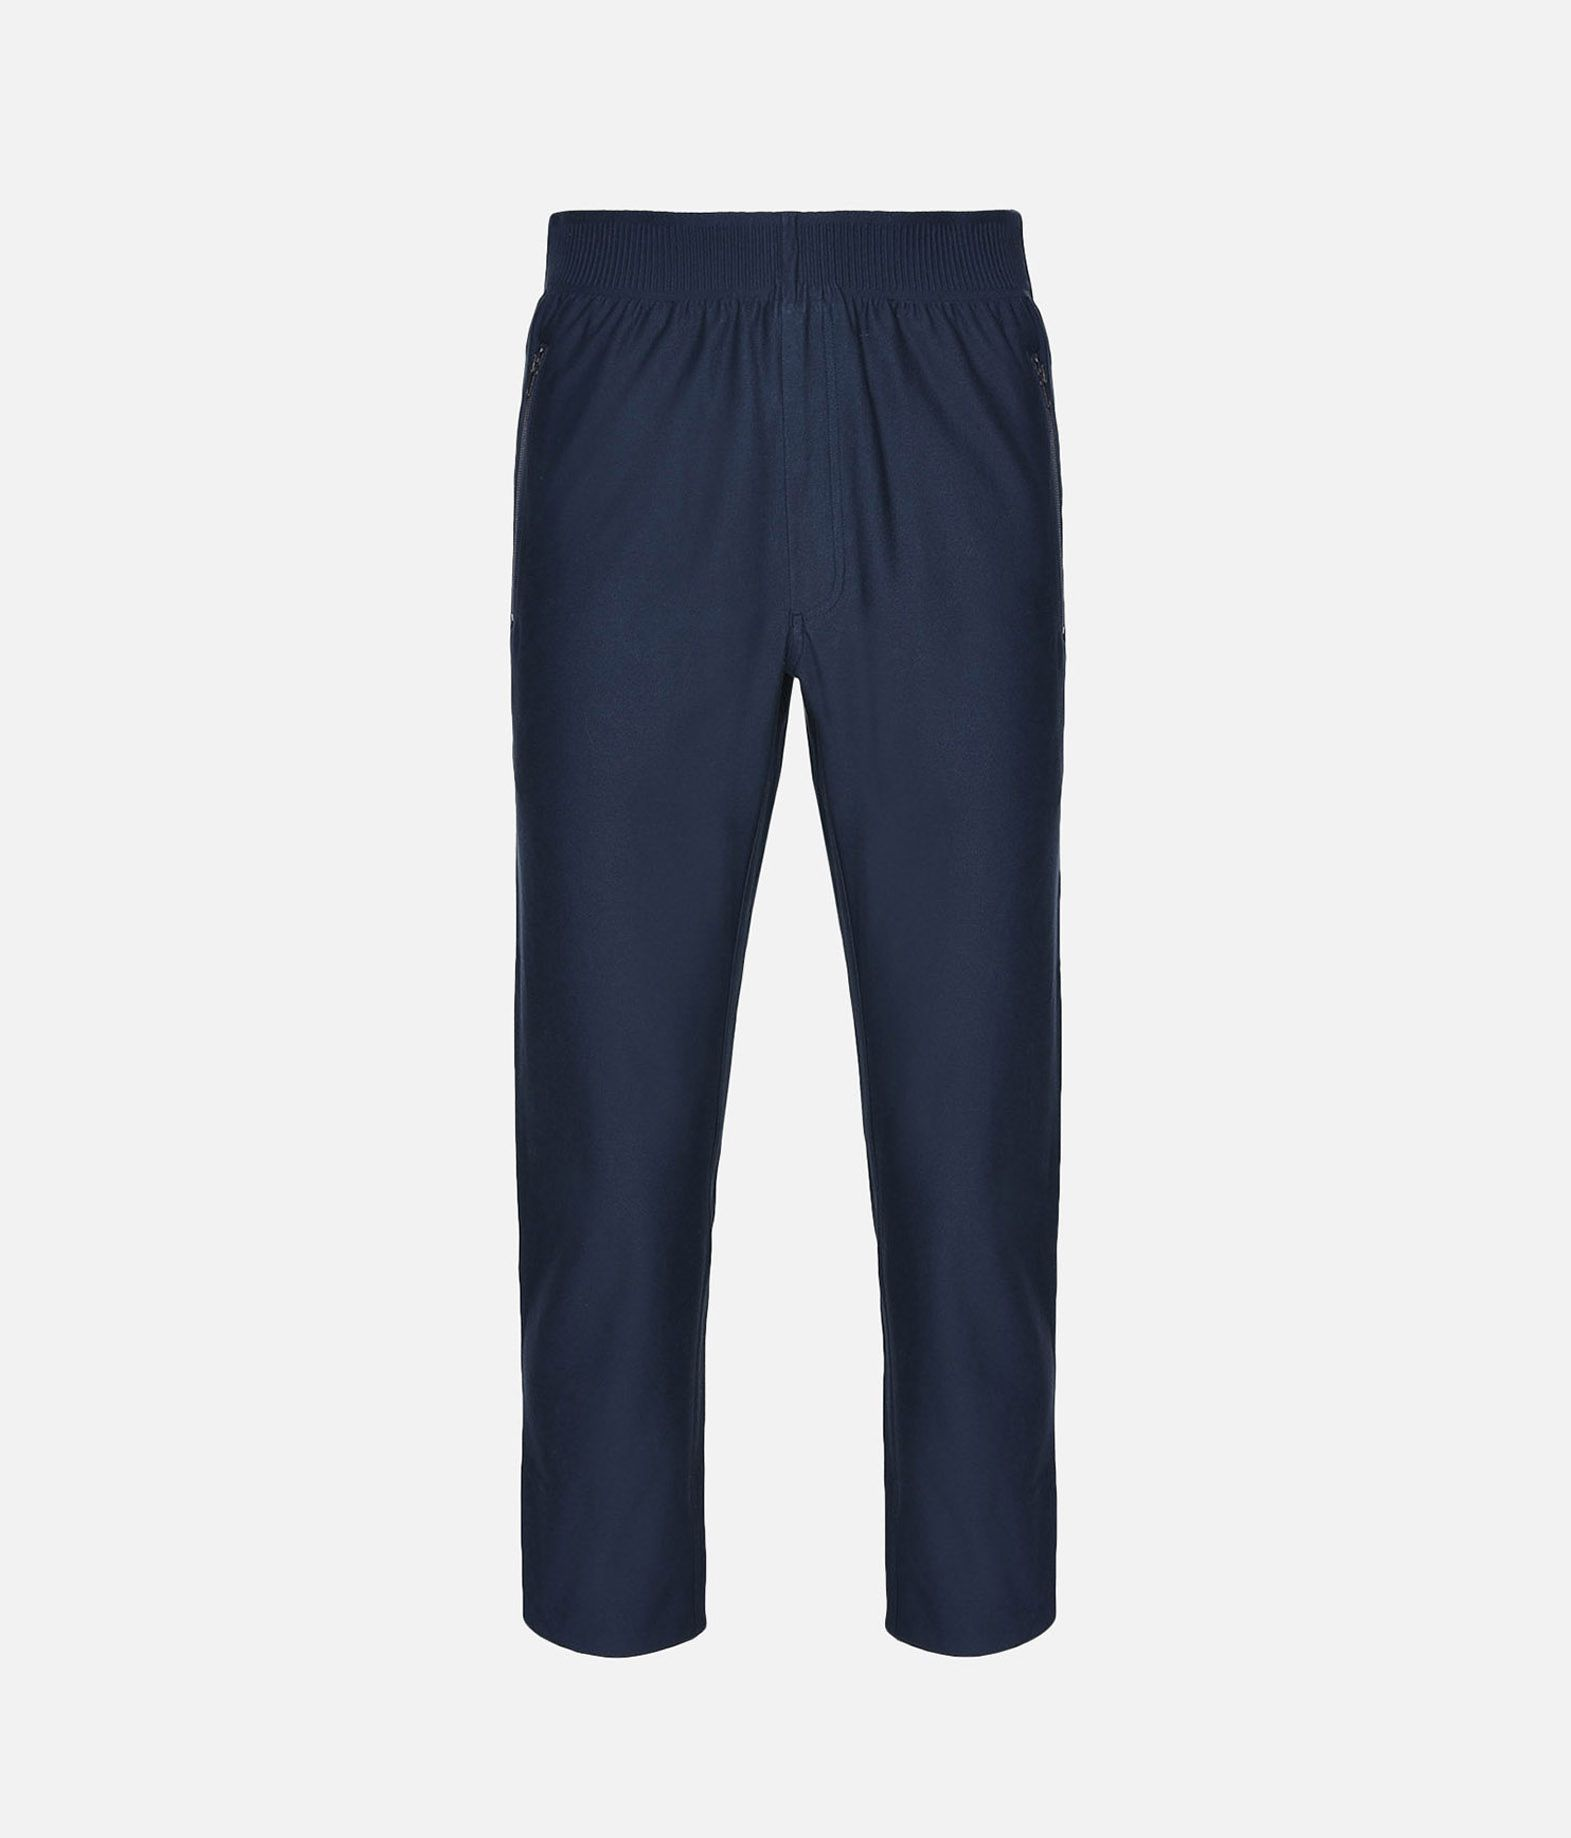 Y-3 Y-3 Twill Cropped Pants Cropped pant Man f